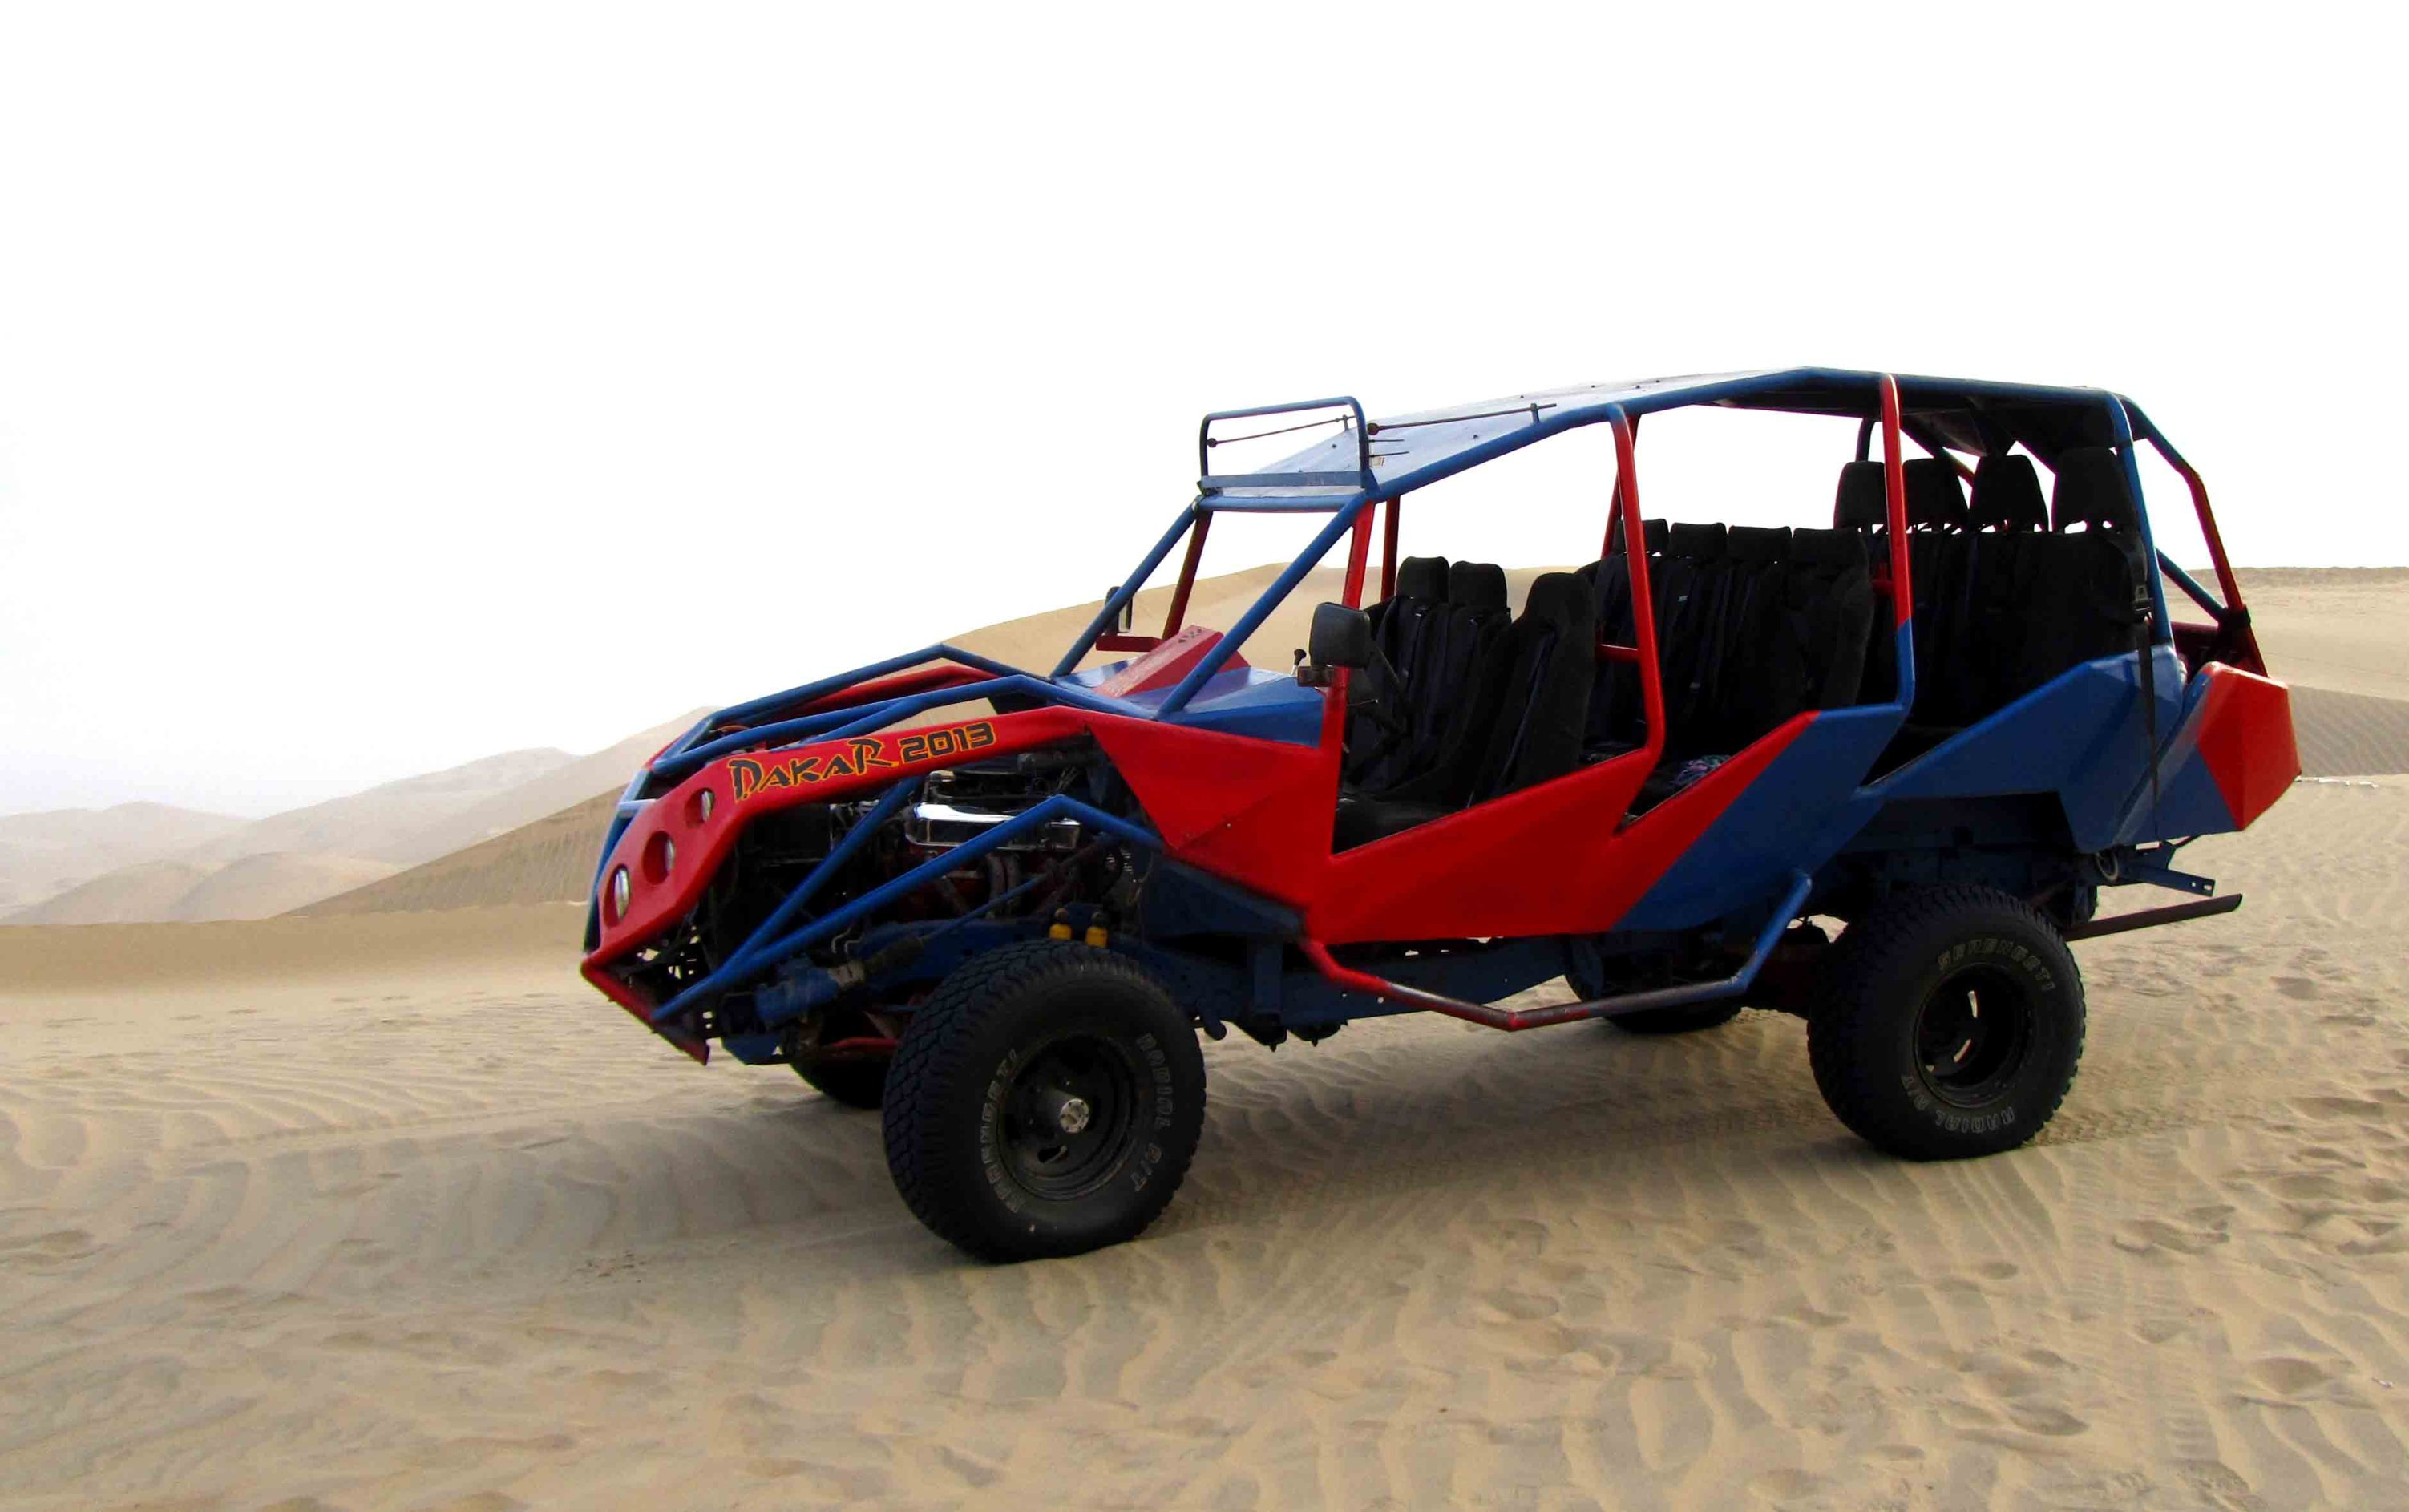 Paseo en buggy y sandboard. Buggy trip and sandboard.  José Carlos Ferrandiz  (Rutas del Sol) & Jesús Herrera (Magic Desert Adventures) Huacachina, Ica, Perú Photo credit, placeOK